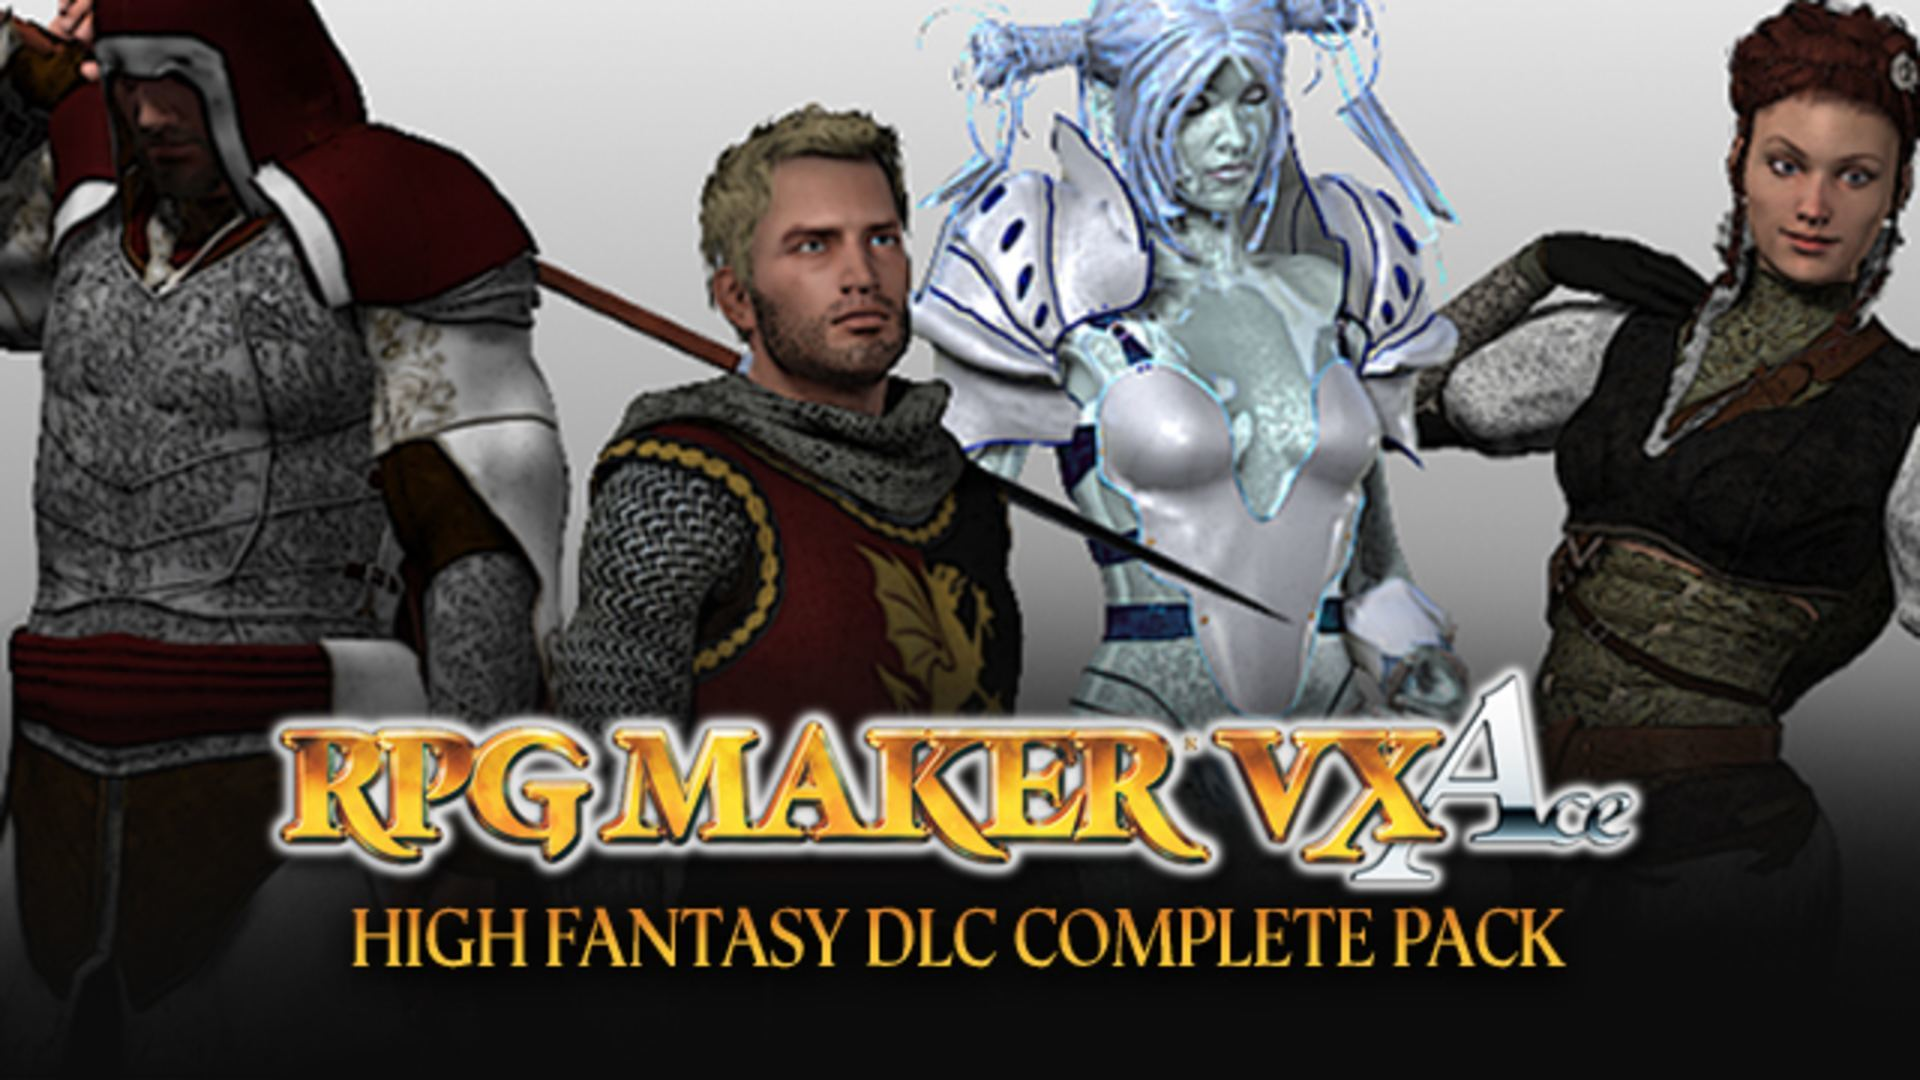 RPG Maker VX Ace: High Fantasy DLC Complete Pack | Steam